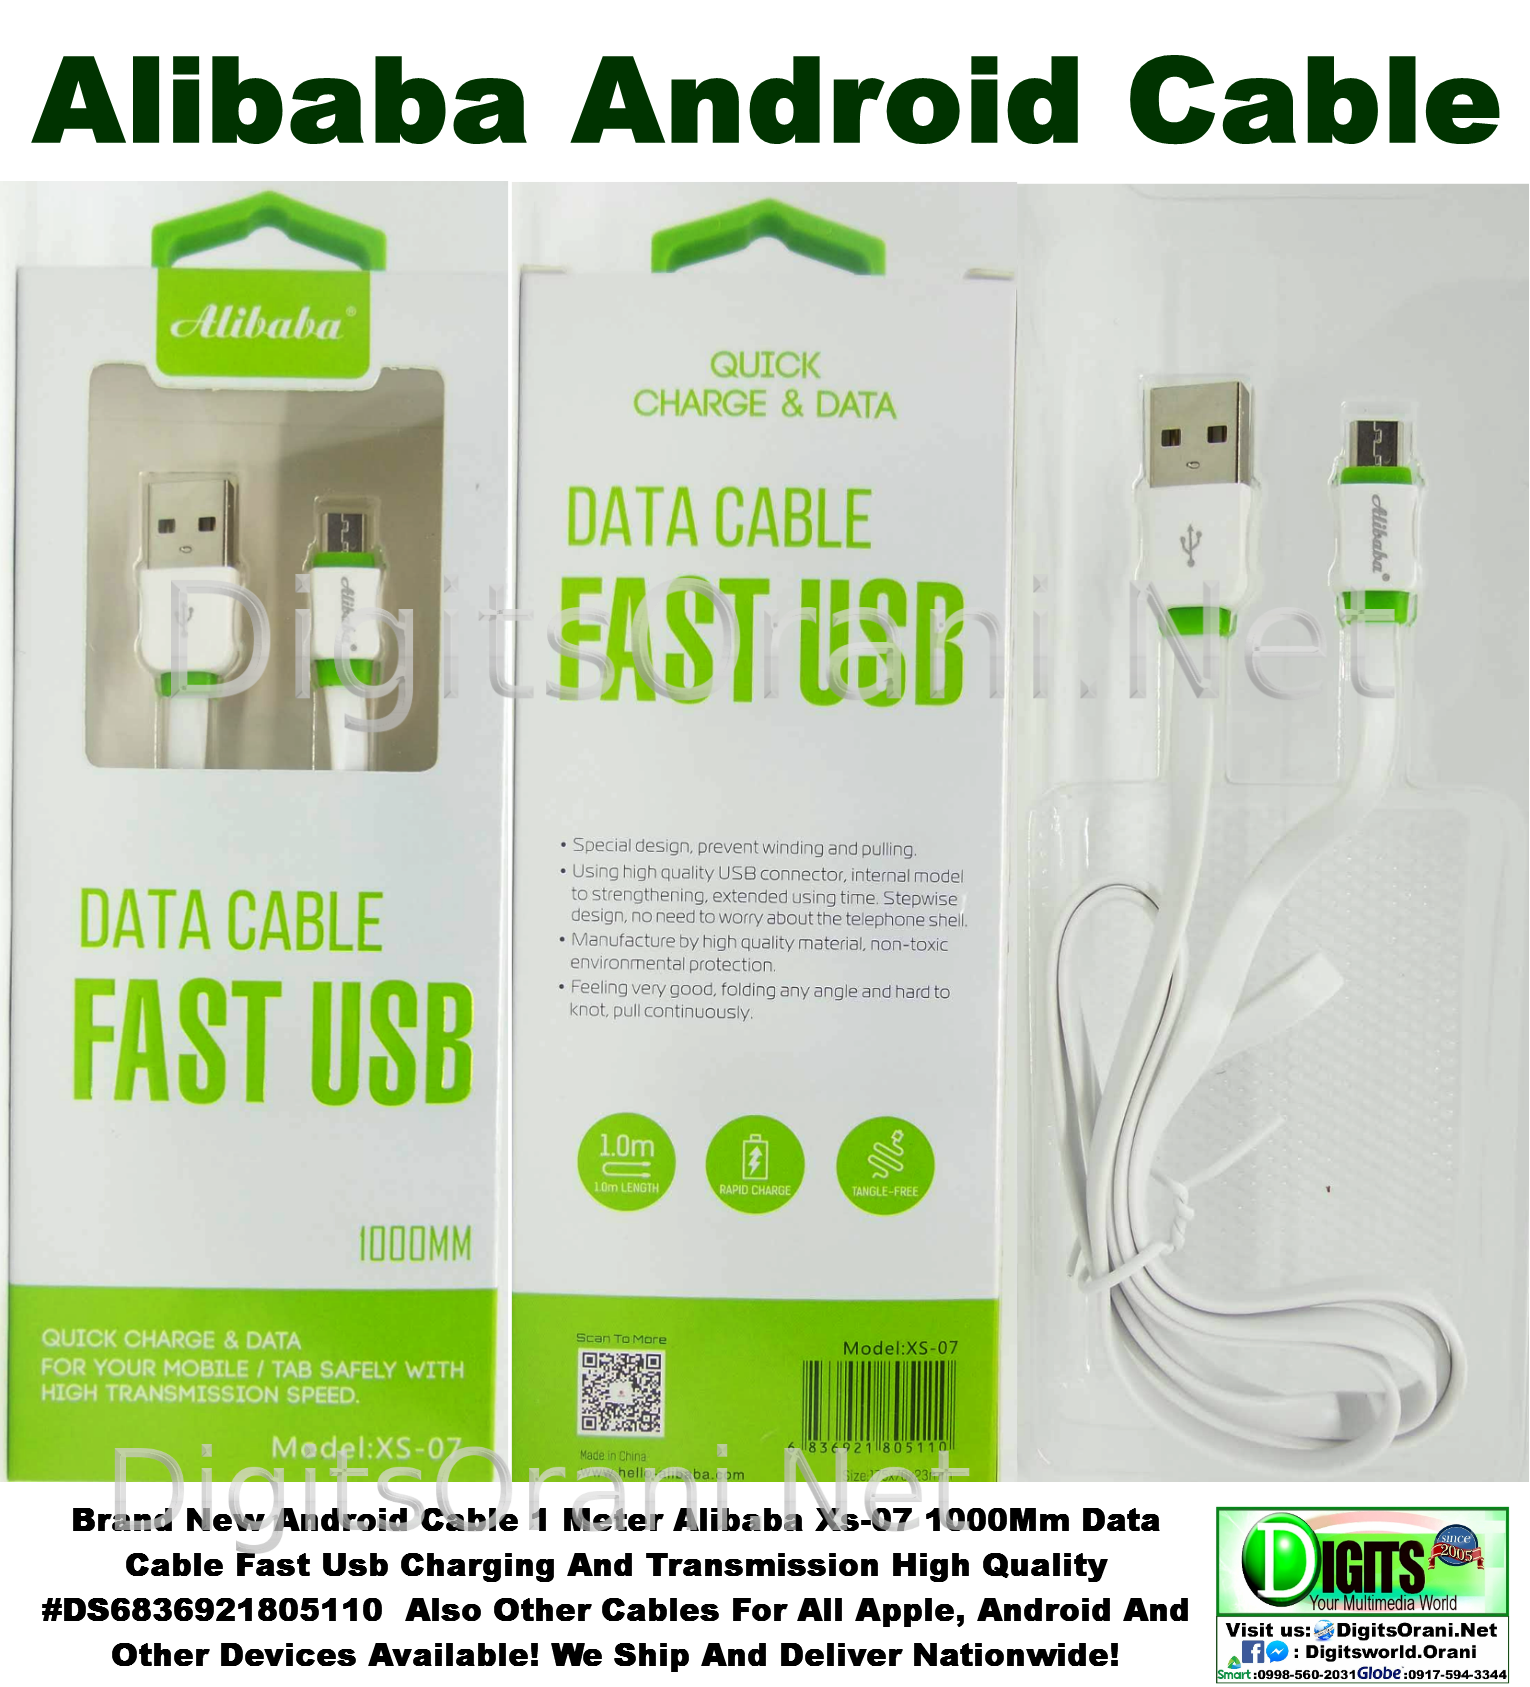 Android Data And Charging Usb Cable 1 Meter Alibaba Data Cable Fast Usb  Xs-07 Data Cable Fast Usb Charging And Transmission High Quality